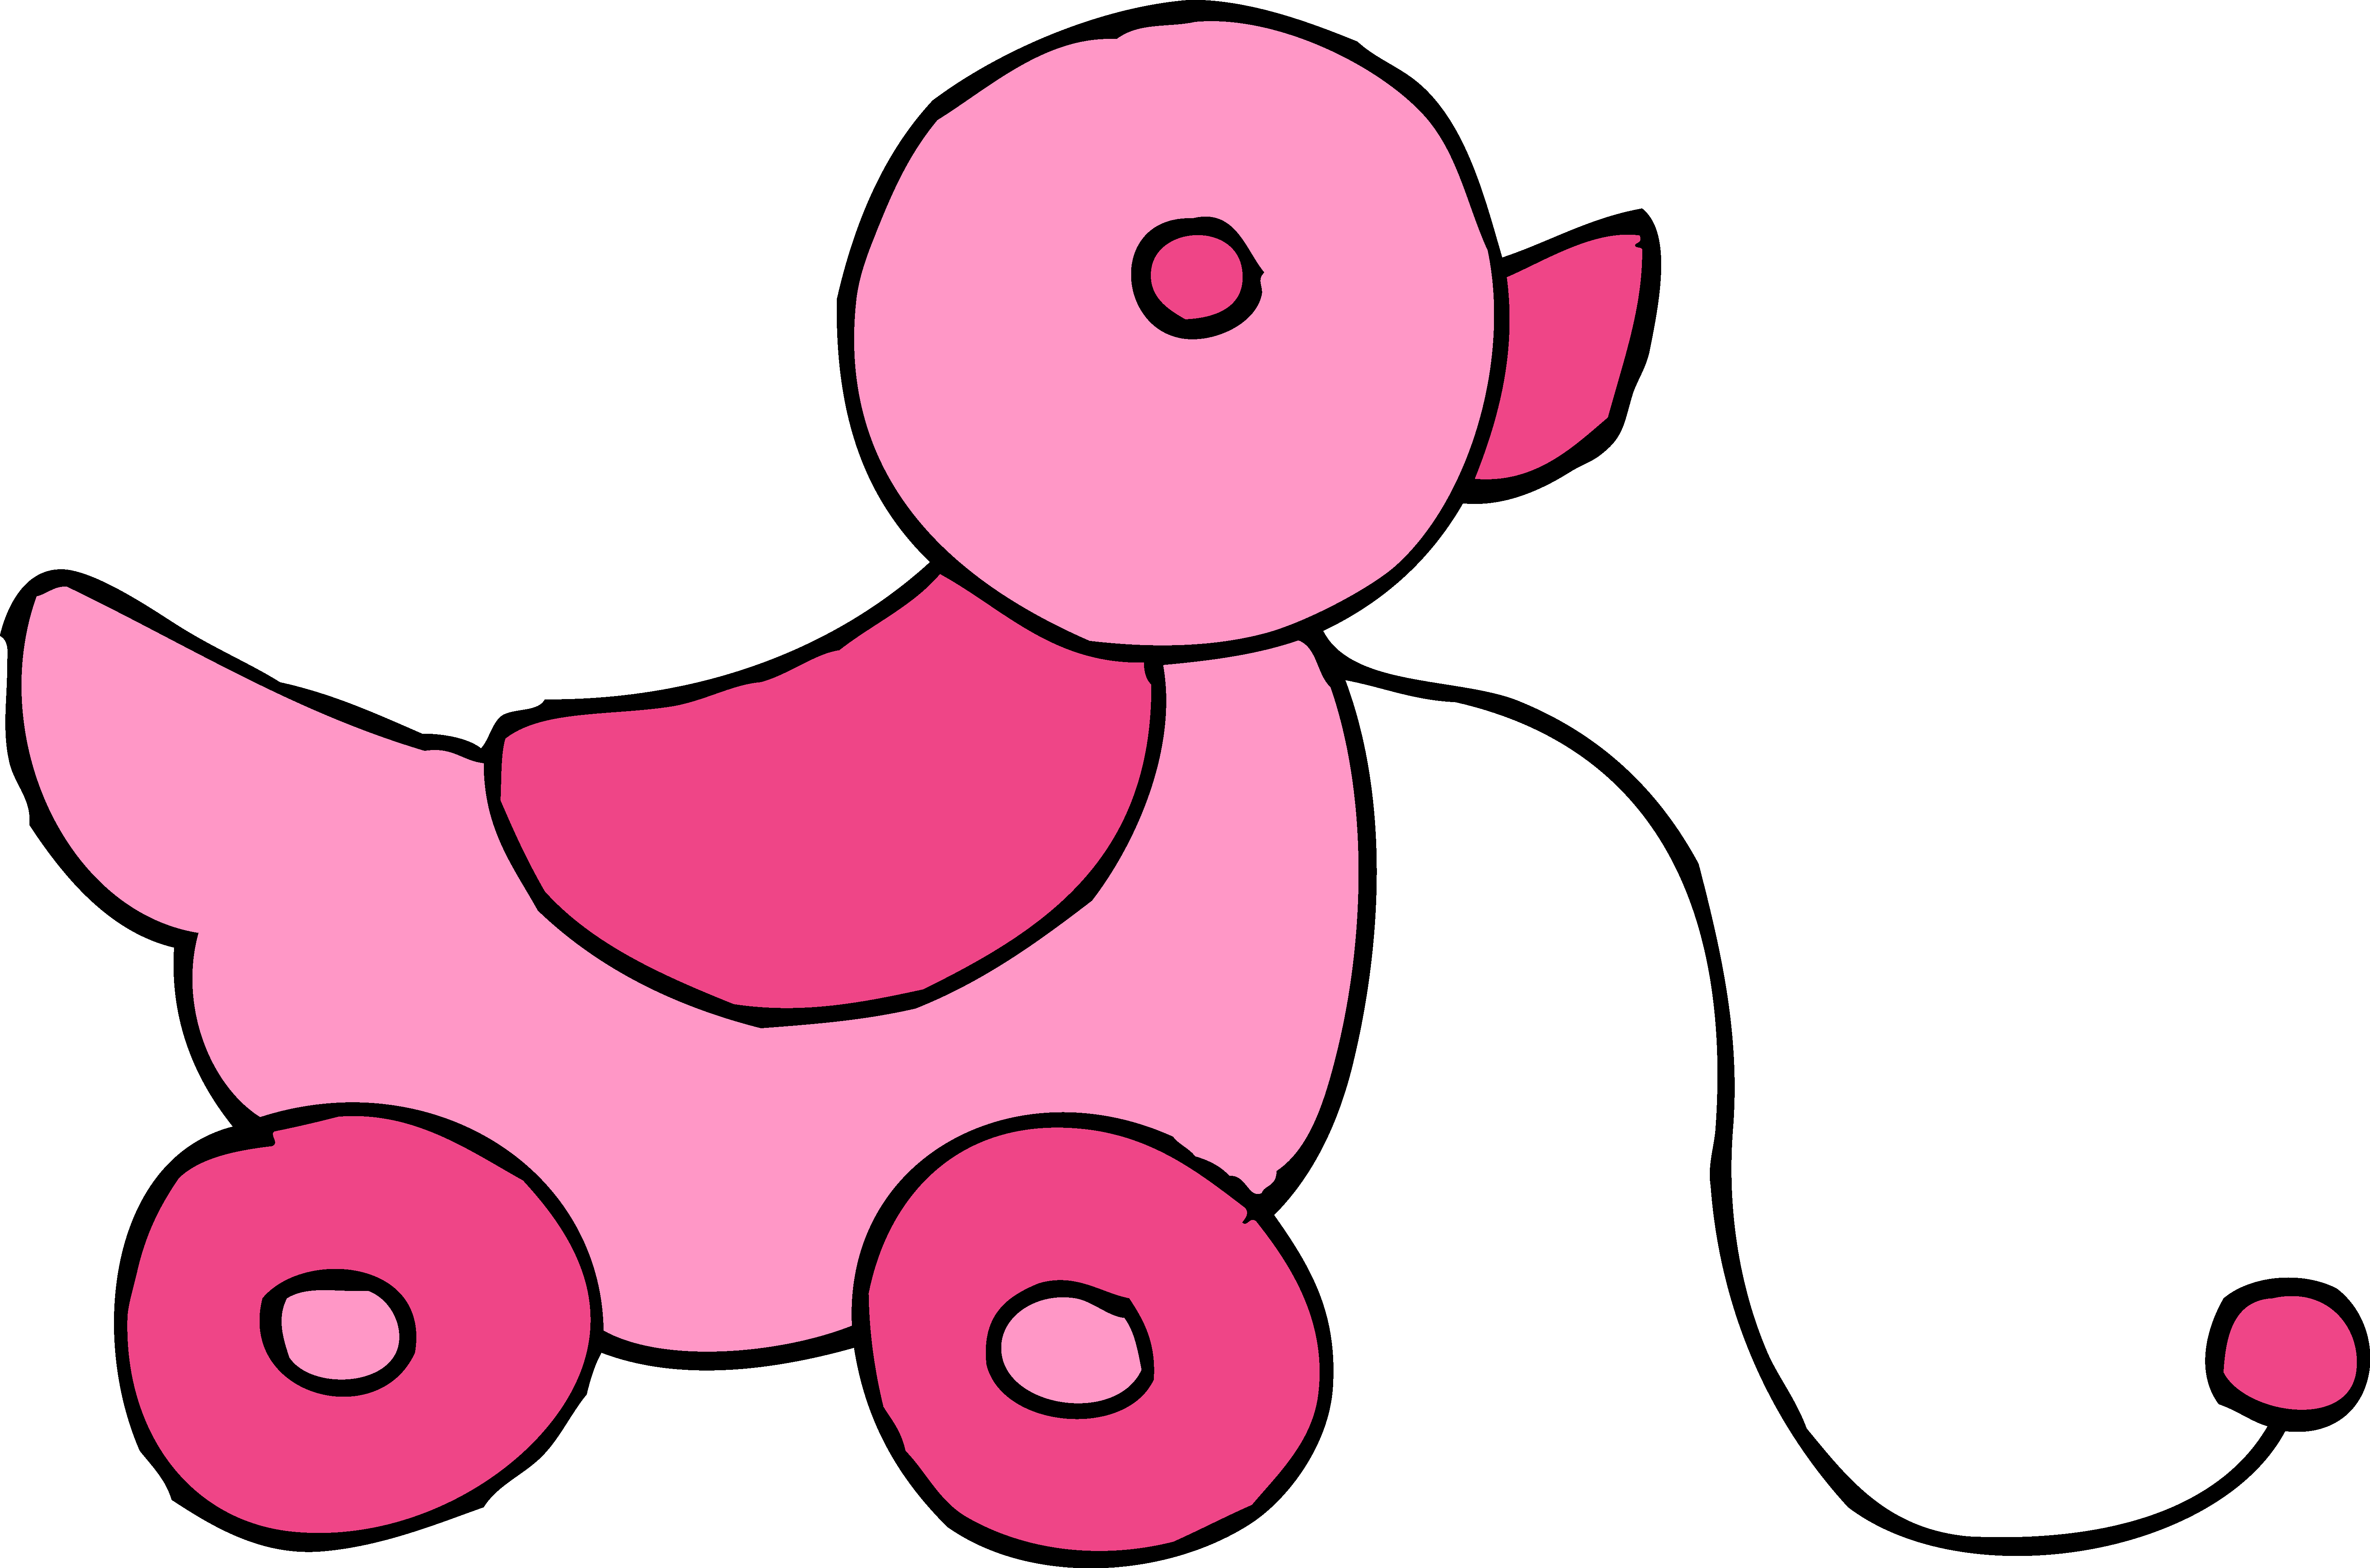 Cute Rolling Pink Duck Toy - Free Clip Art